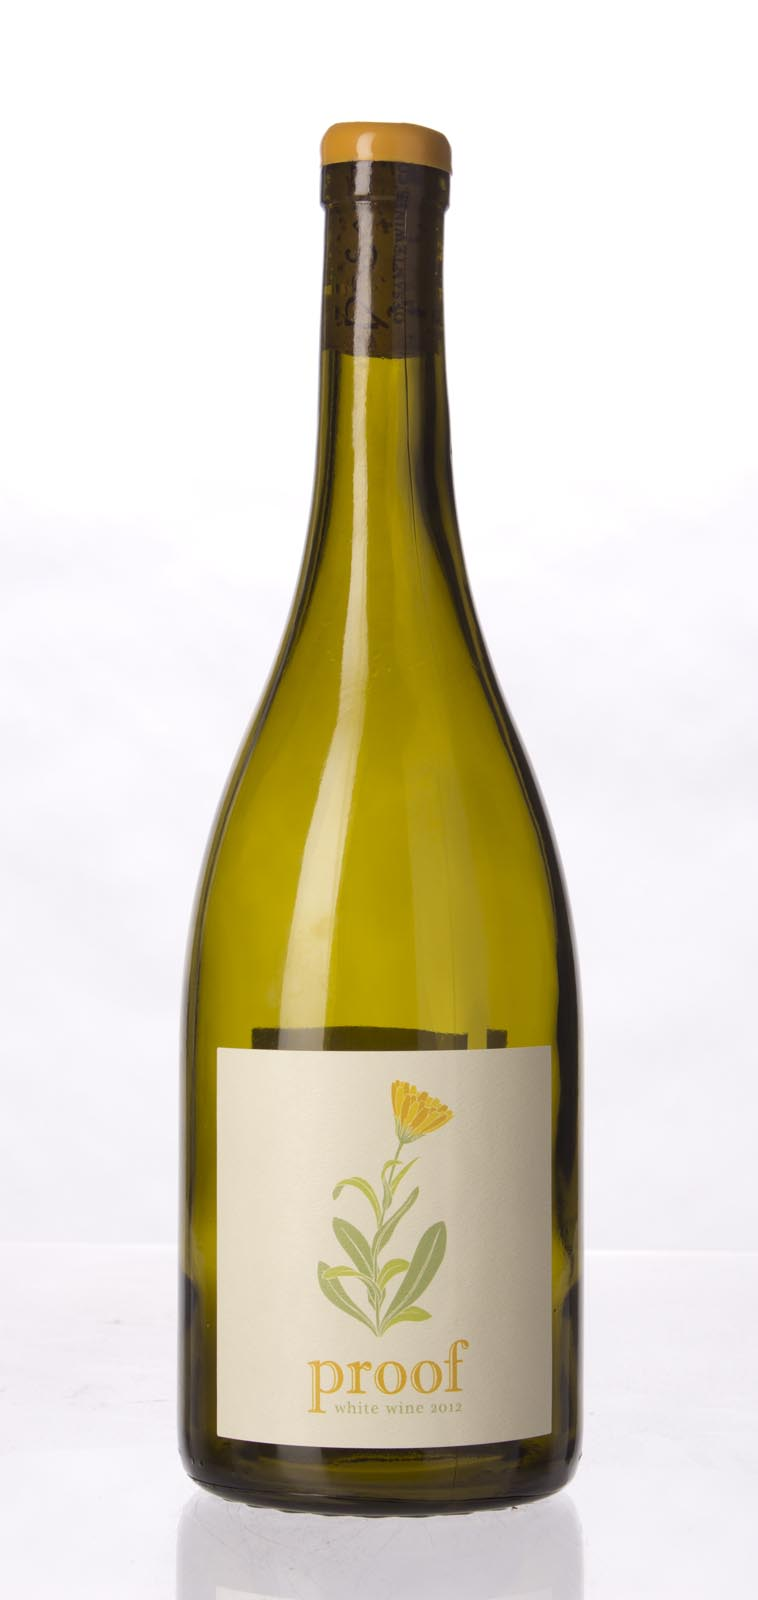 DeSante Proprietary White Proof 2012, 750ml () from The BPW - Merchants of rare and fine wines.